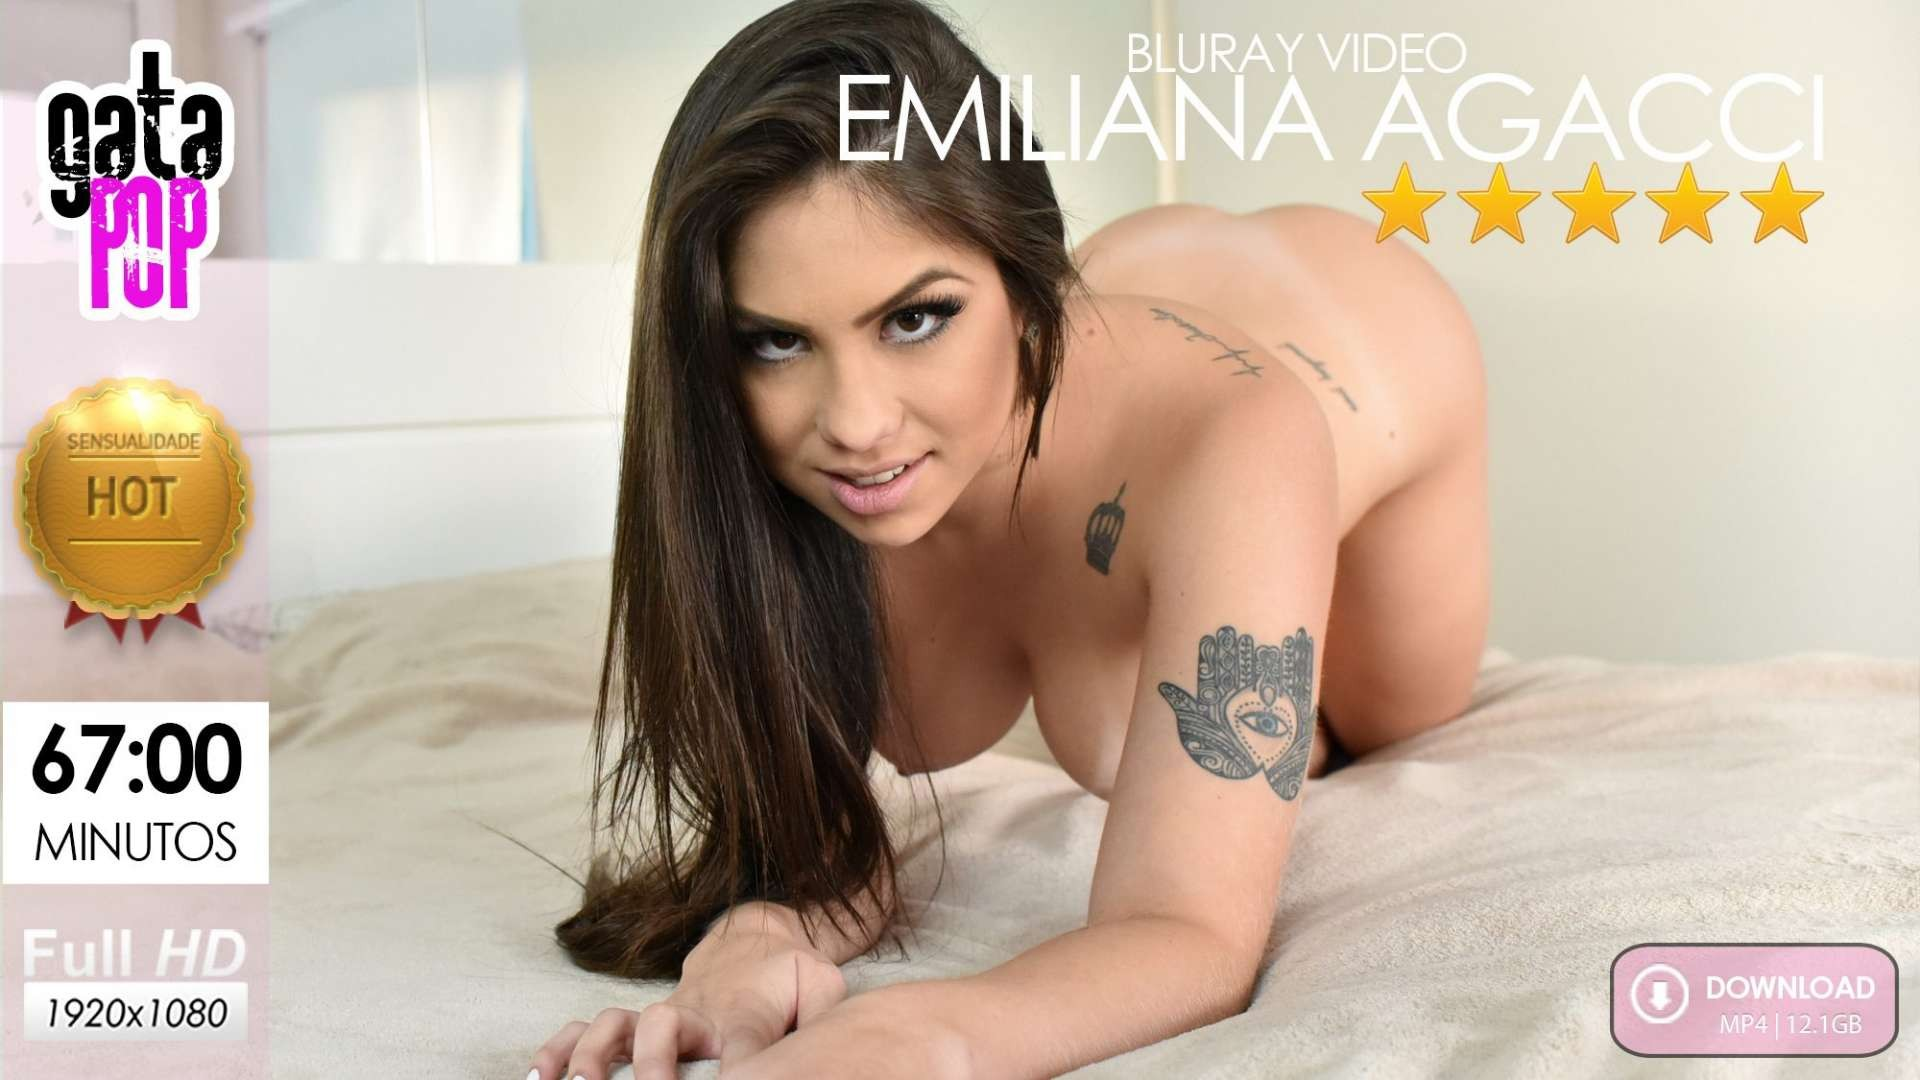 Emiliana Agacci - Bluray